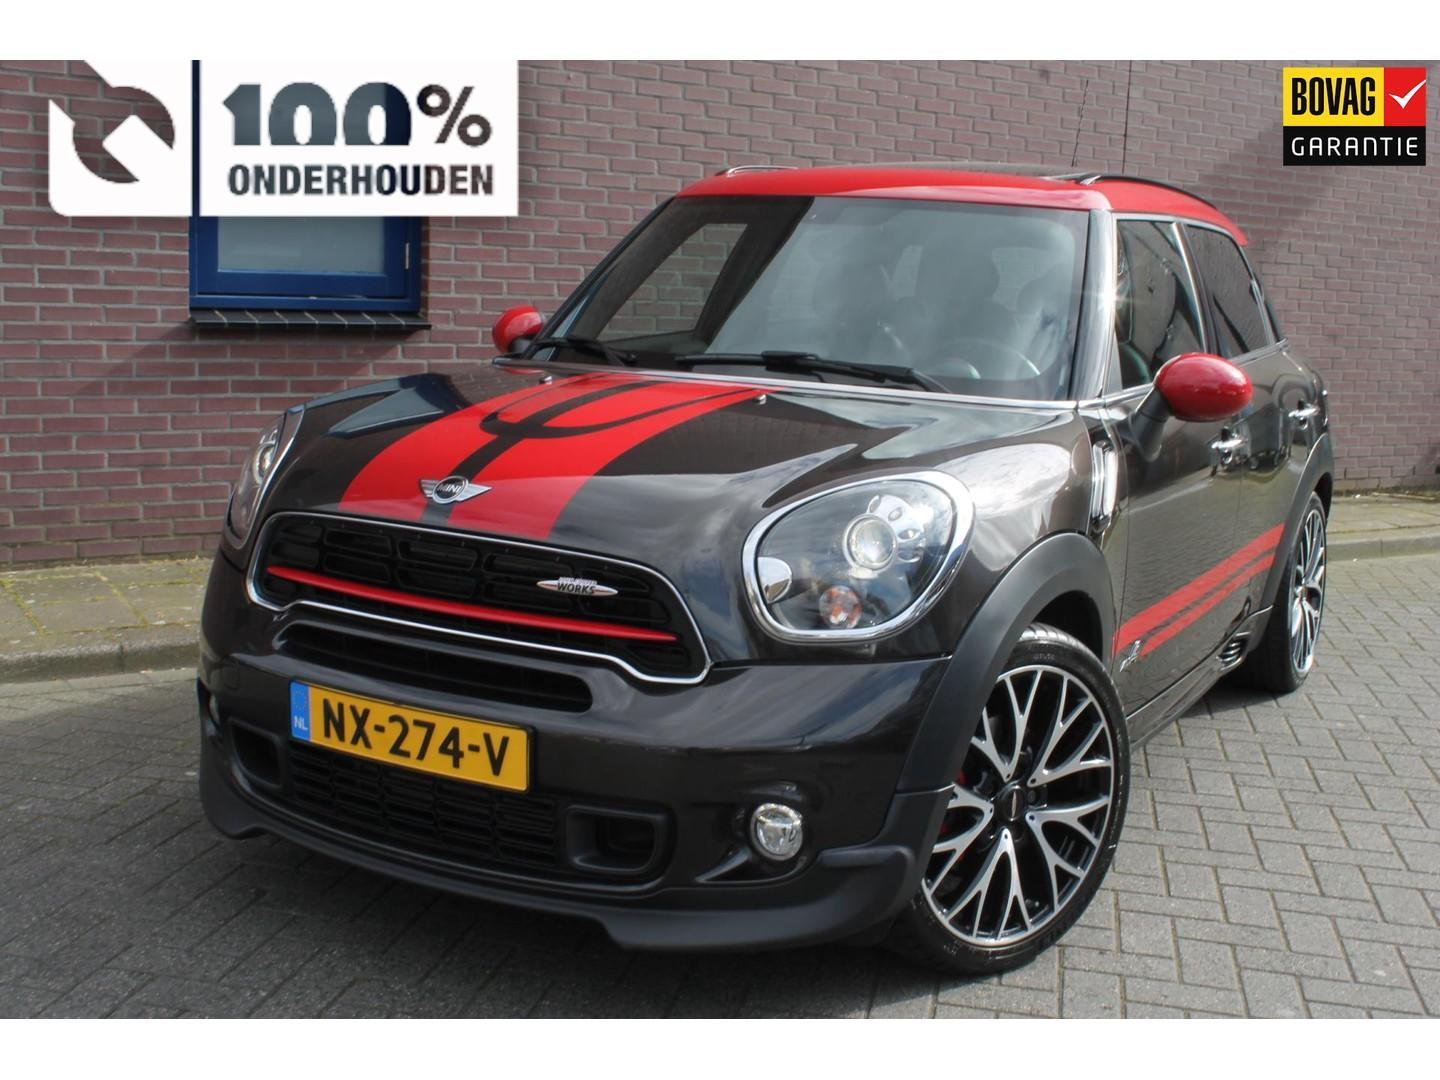 Mini Countryman 1.6 john cooper works all4 chili automaat ,met historie !